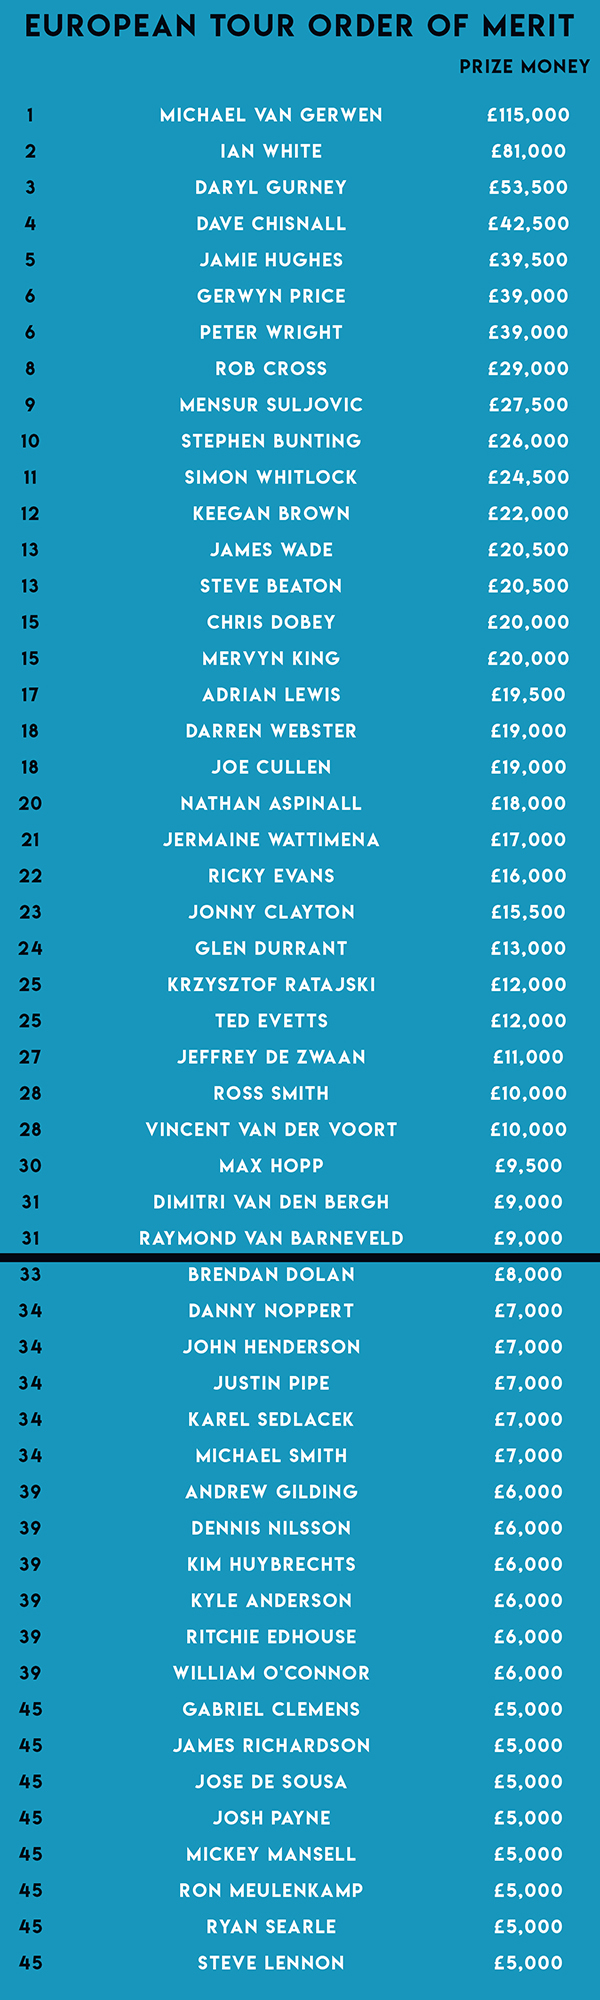 European Tour Order of Merit (PDC)